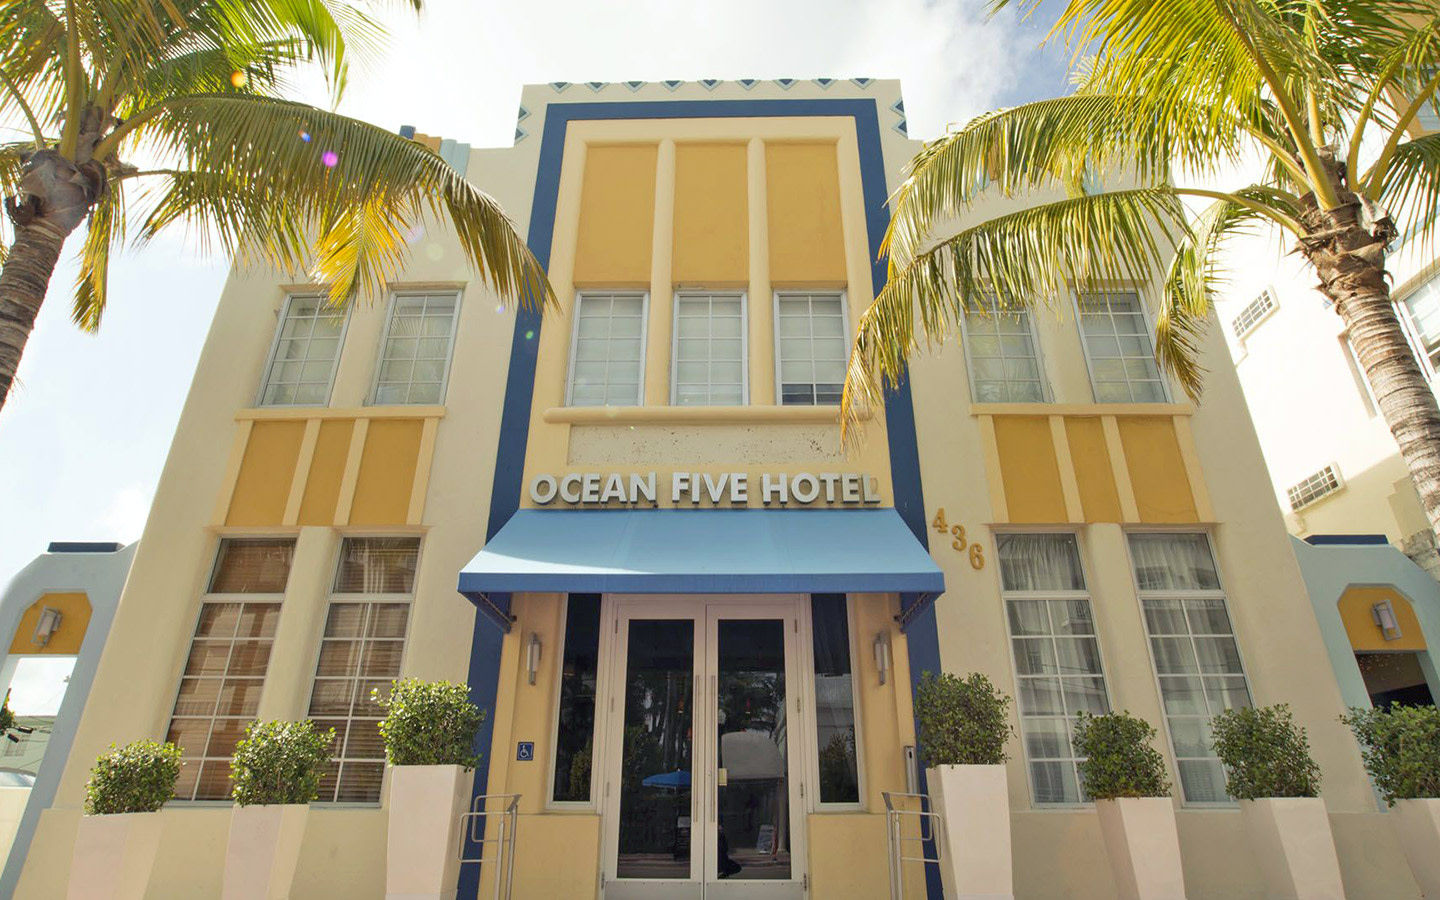 Ocean Five Hotel - Miami Beach